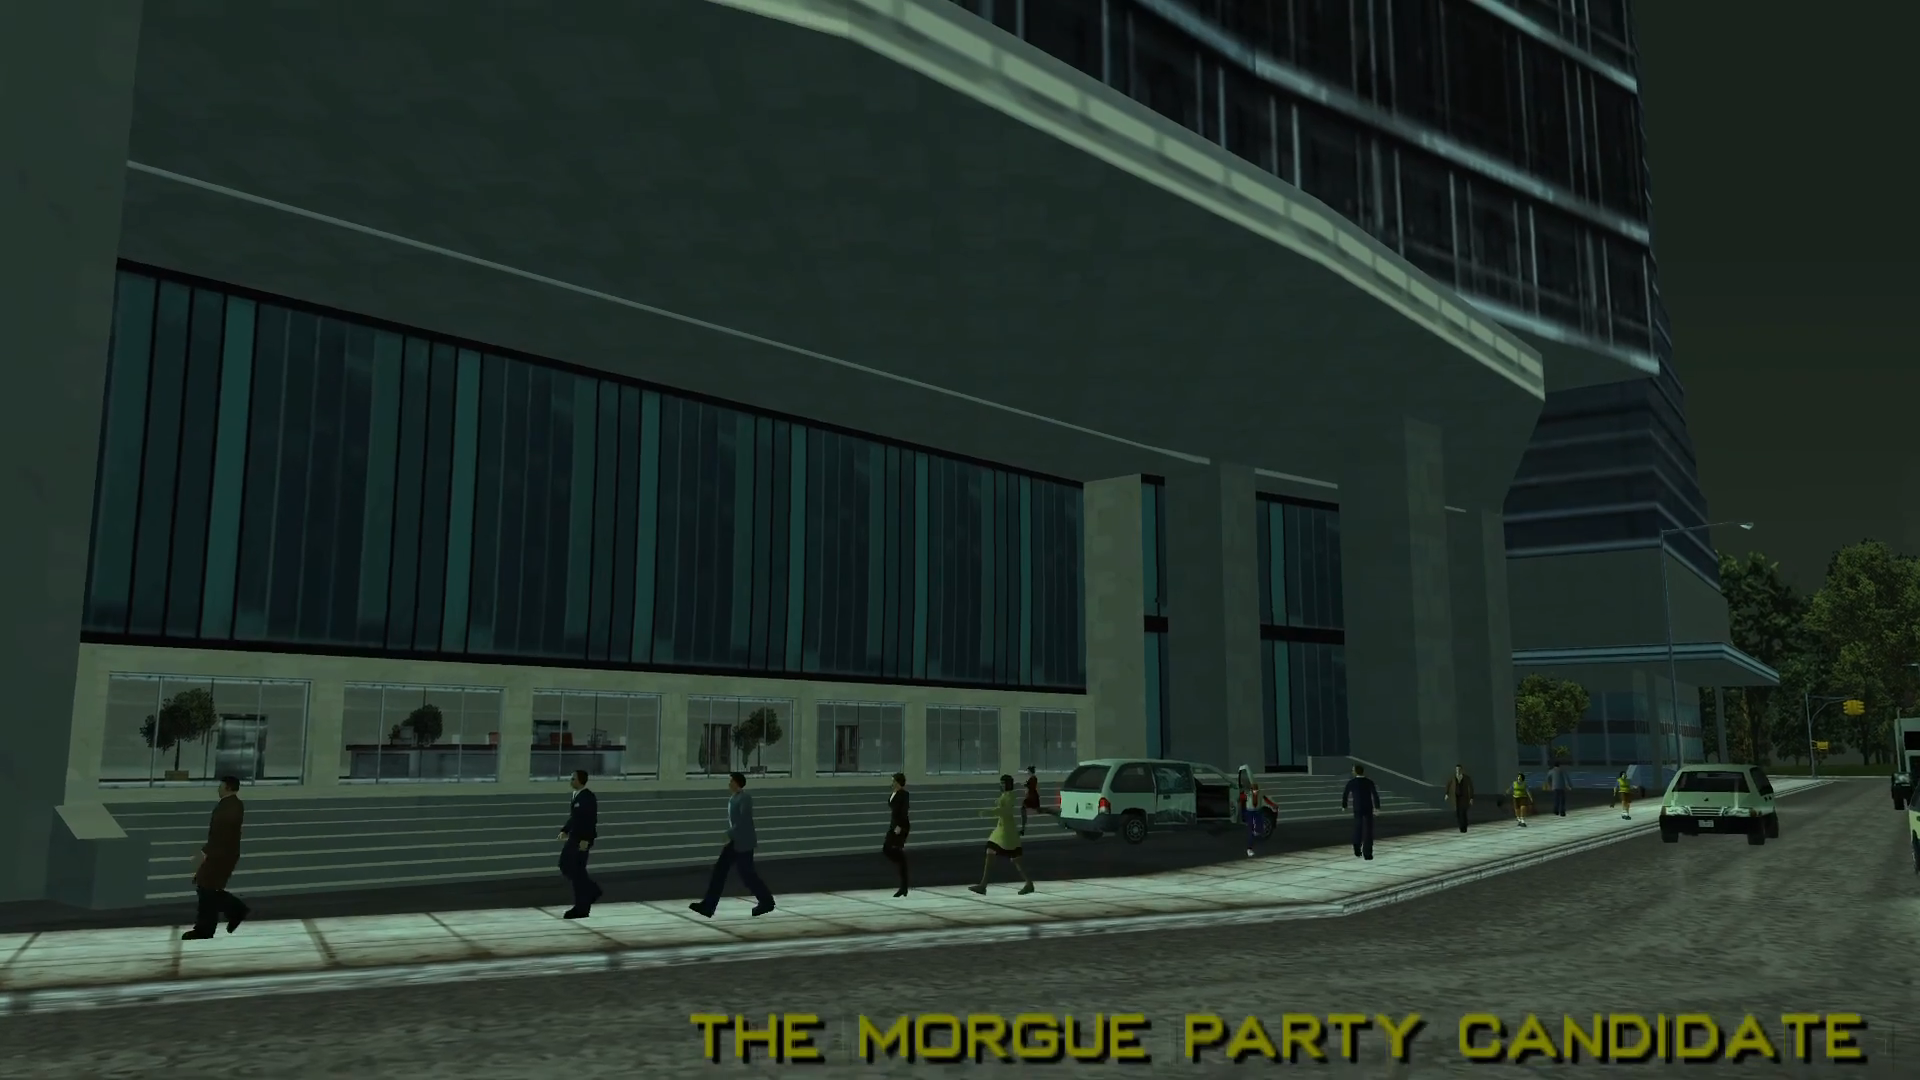 The Morgue Party Candidate